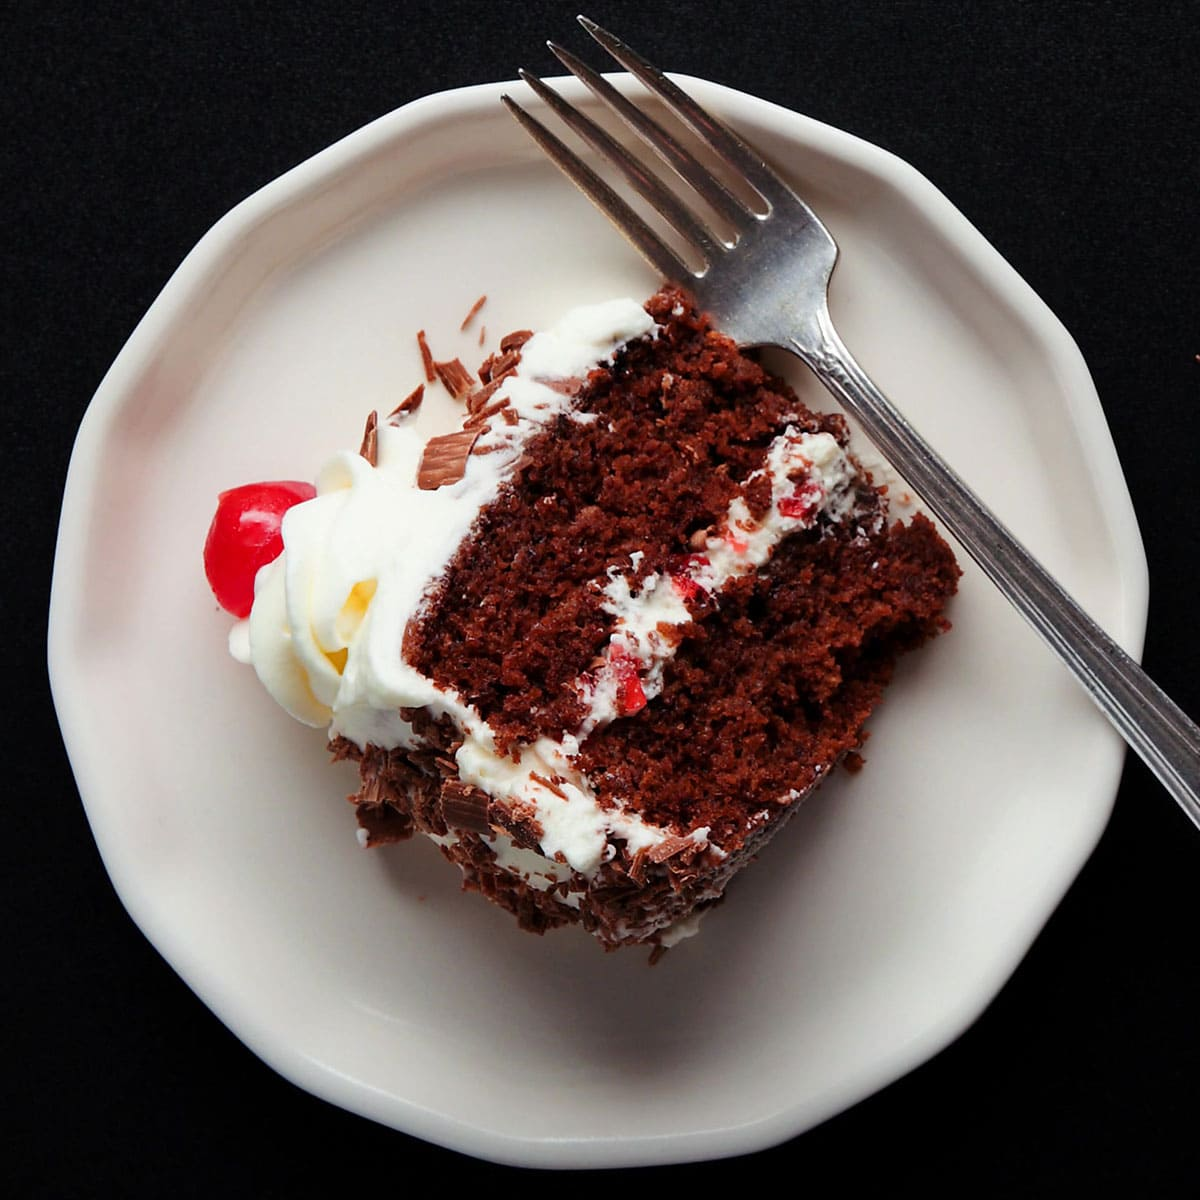 overhead shot of a slice of black forest cake on its side on a white dessert plate with a silver fork